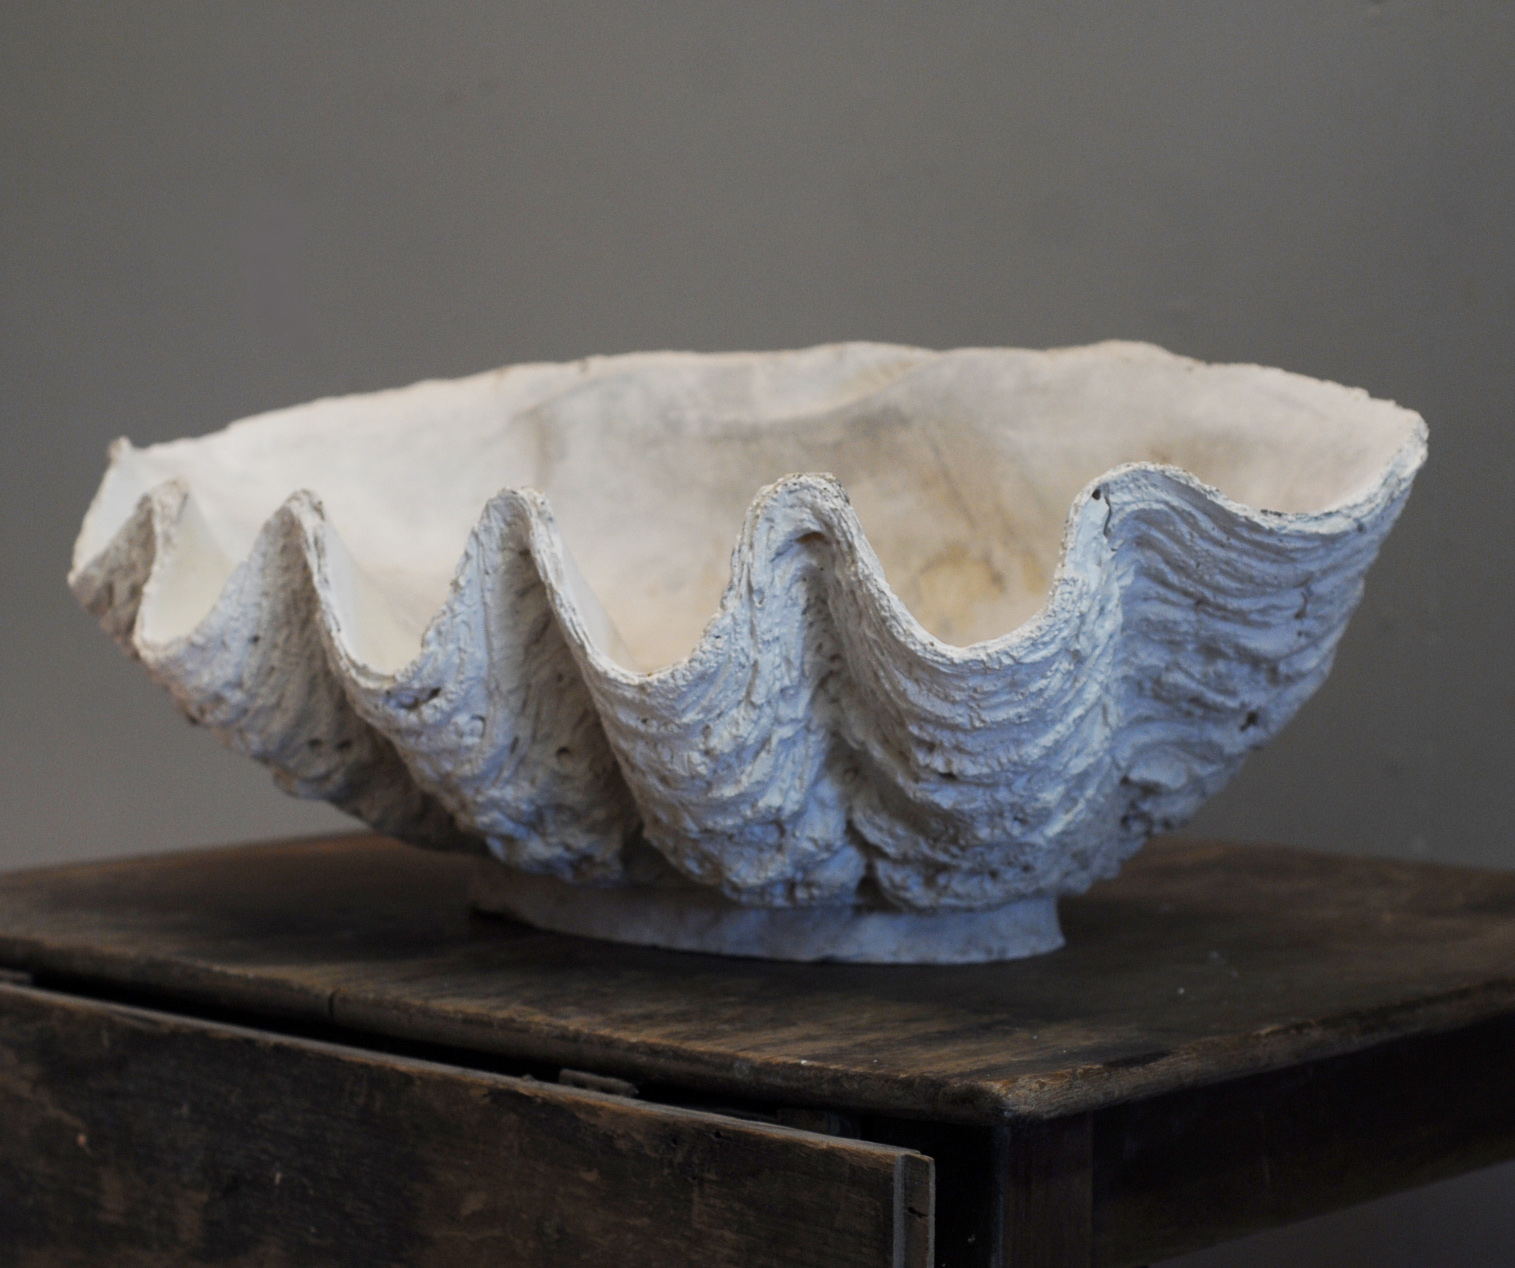 An English plaster cast of a clam shell-136748